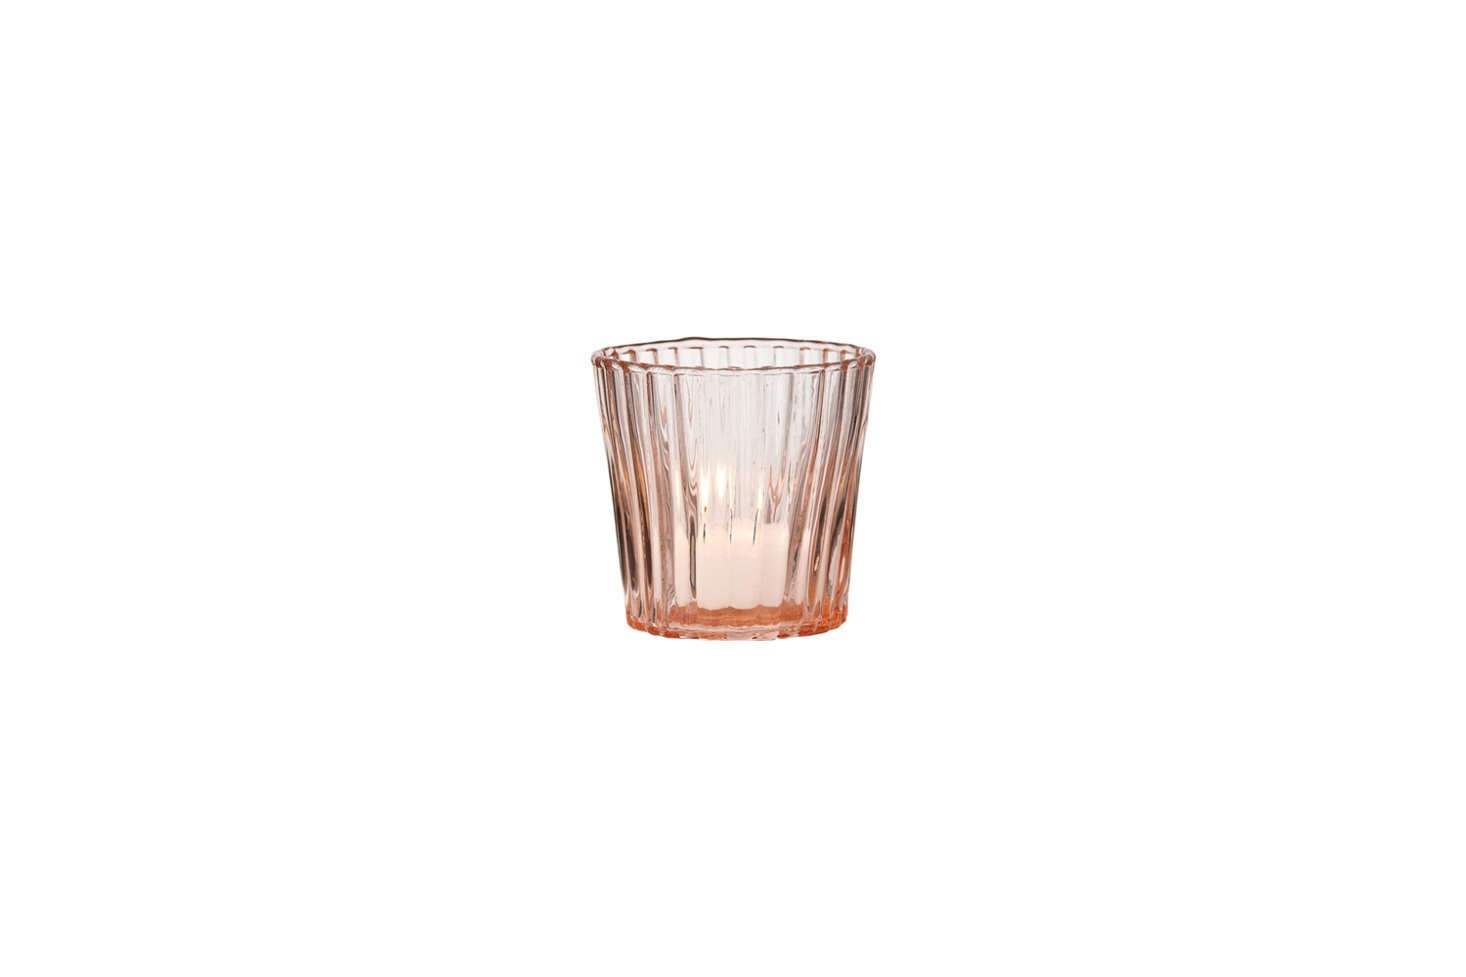 The Caroline Vintage Glass Candle Holder in Pink resembles the vintage Depression Glass tea light holder in the kitchen. This one is $4.90 at Luna Bazaar.